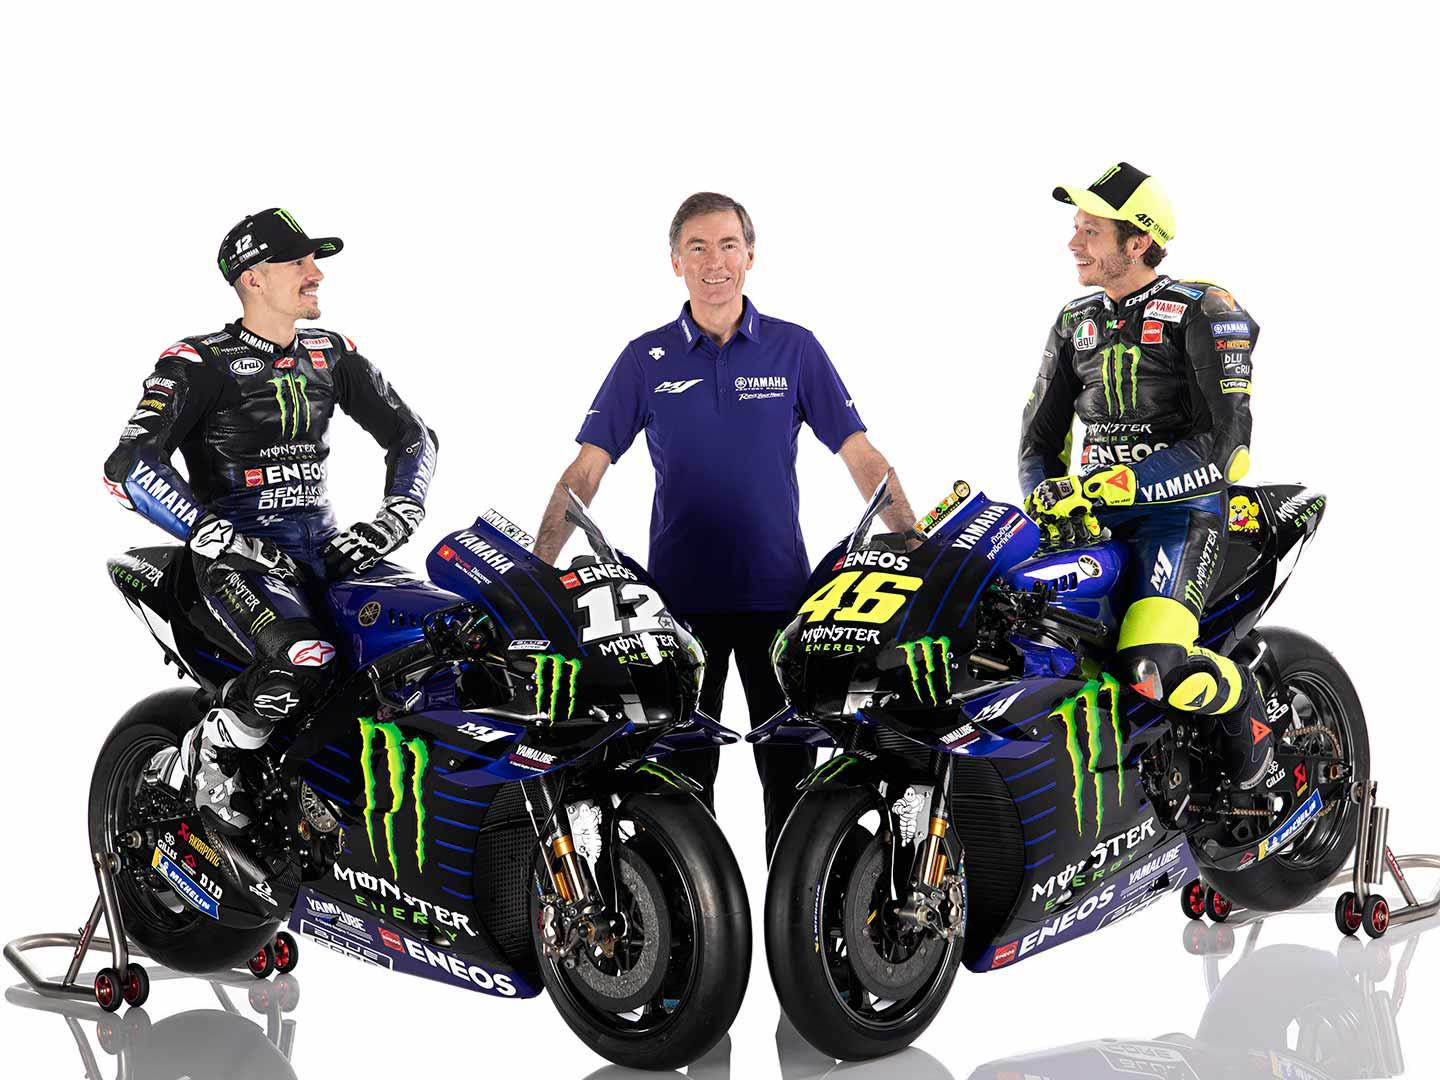 Monster Energy Yamaha unveil 2020 Livery